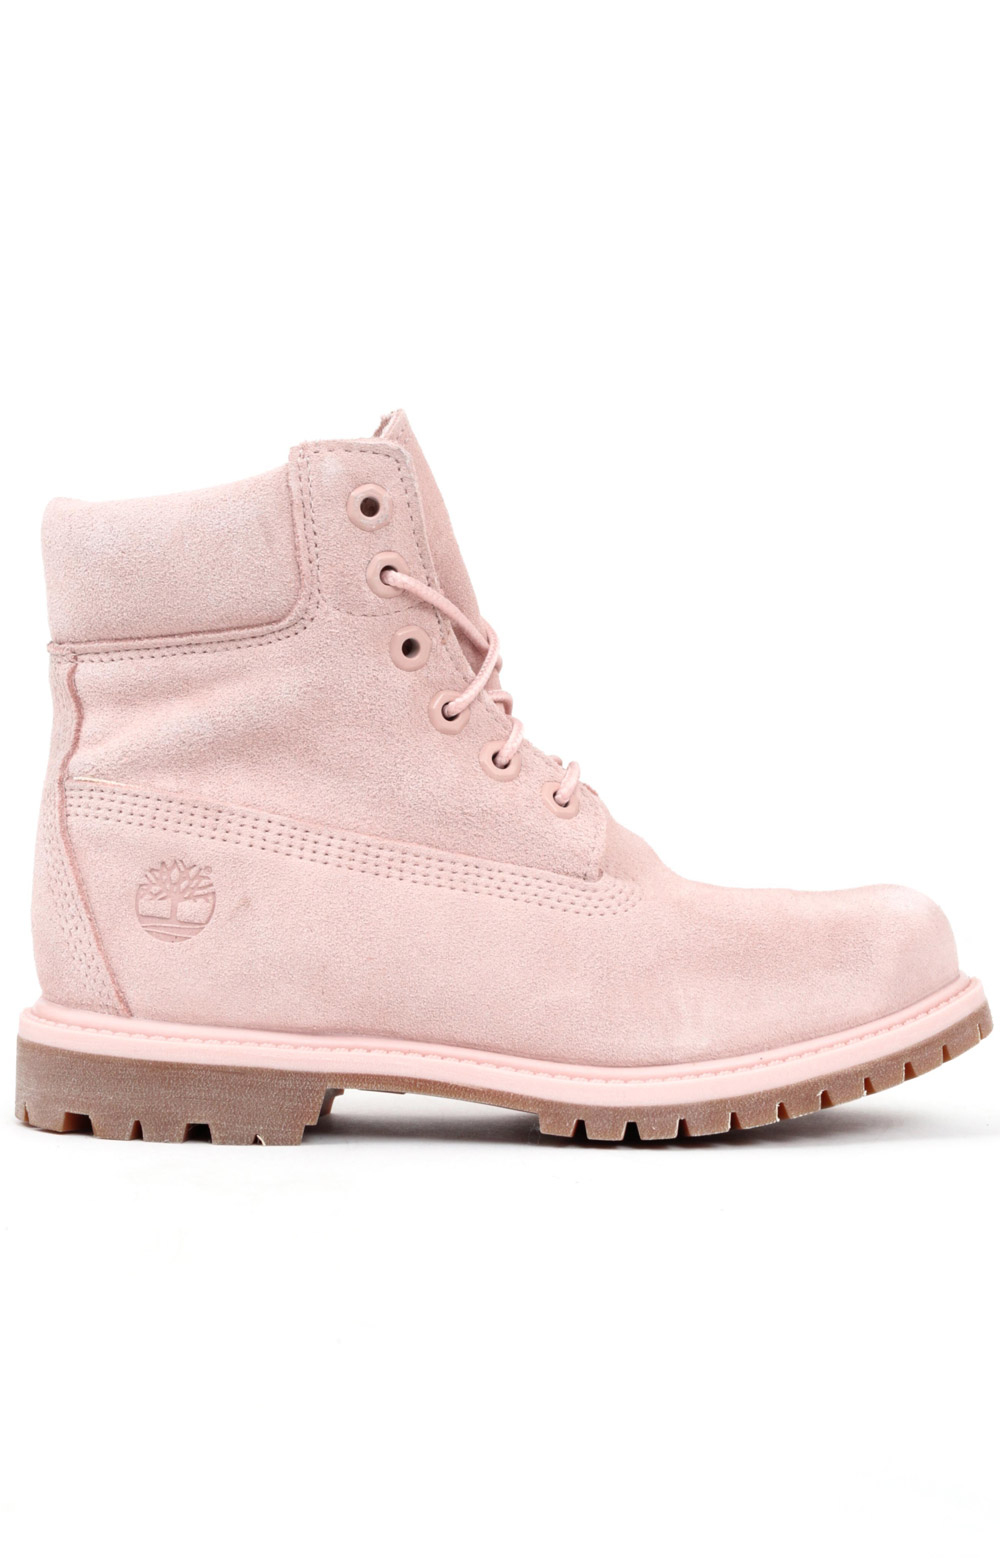 separation shoes 2450f b1245 Premium Boot - Light Pink